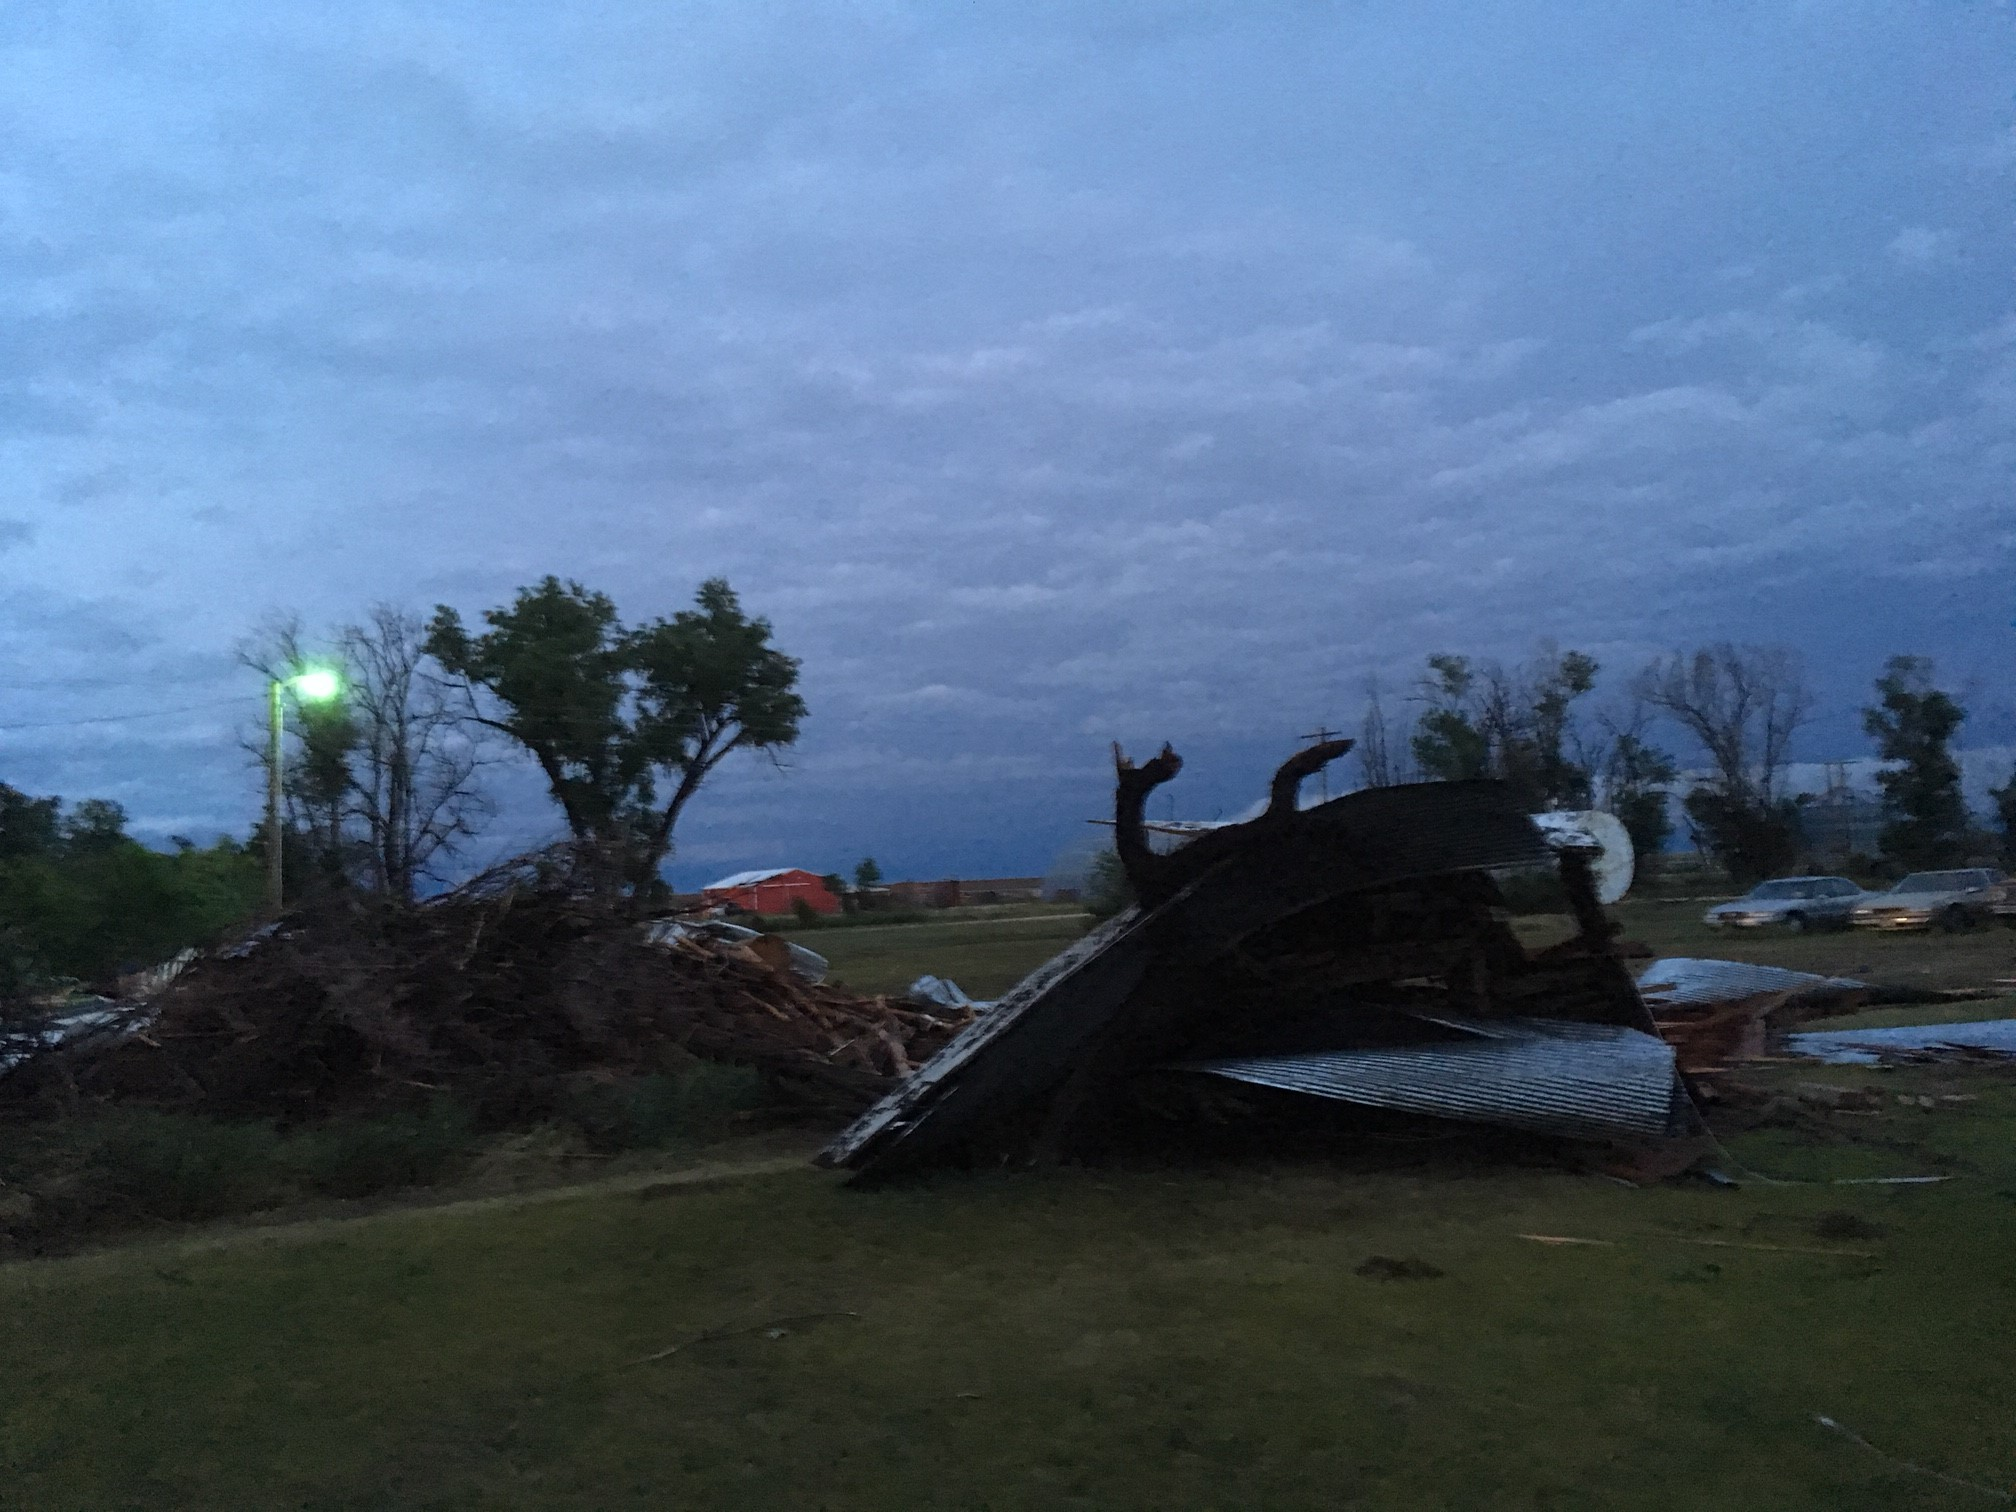 Damage in Cope from a microburst